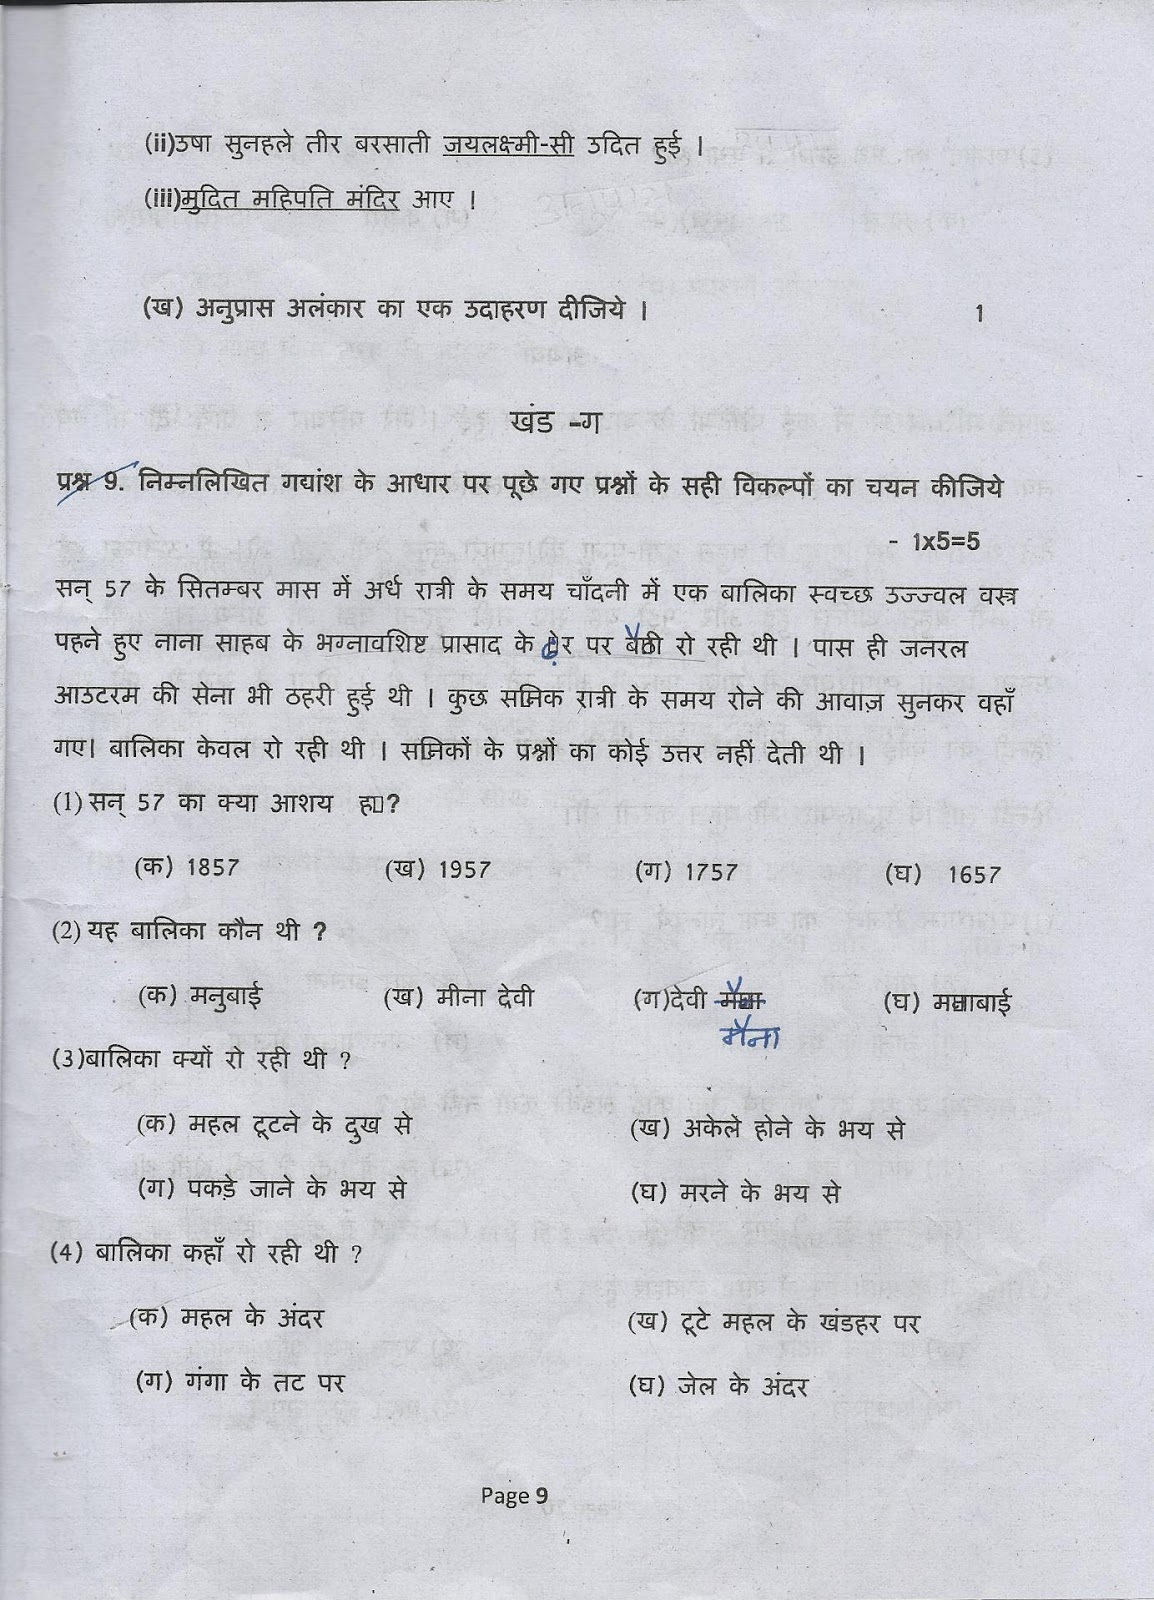 Sample Question Paper For Class 6 Cbse English